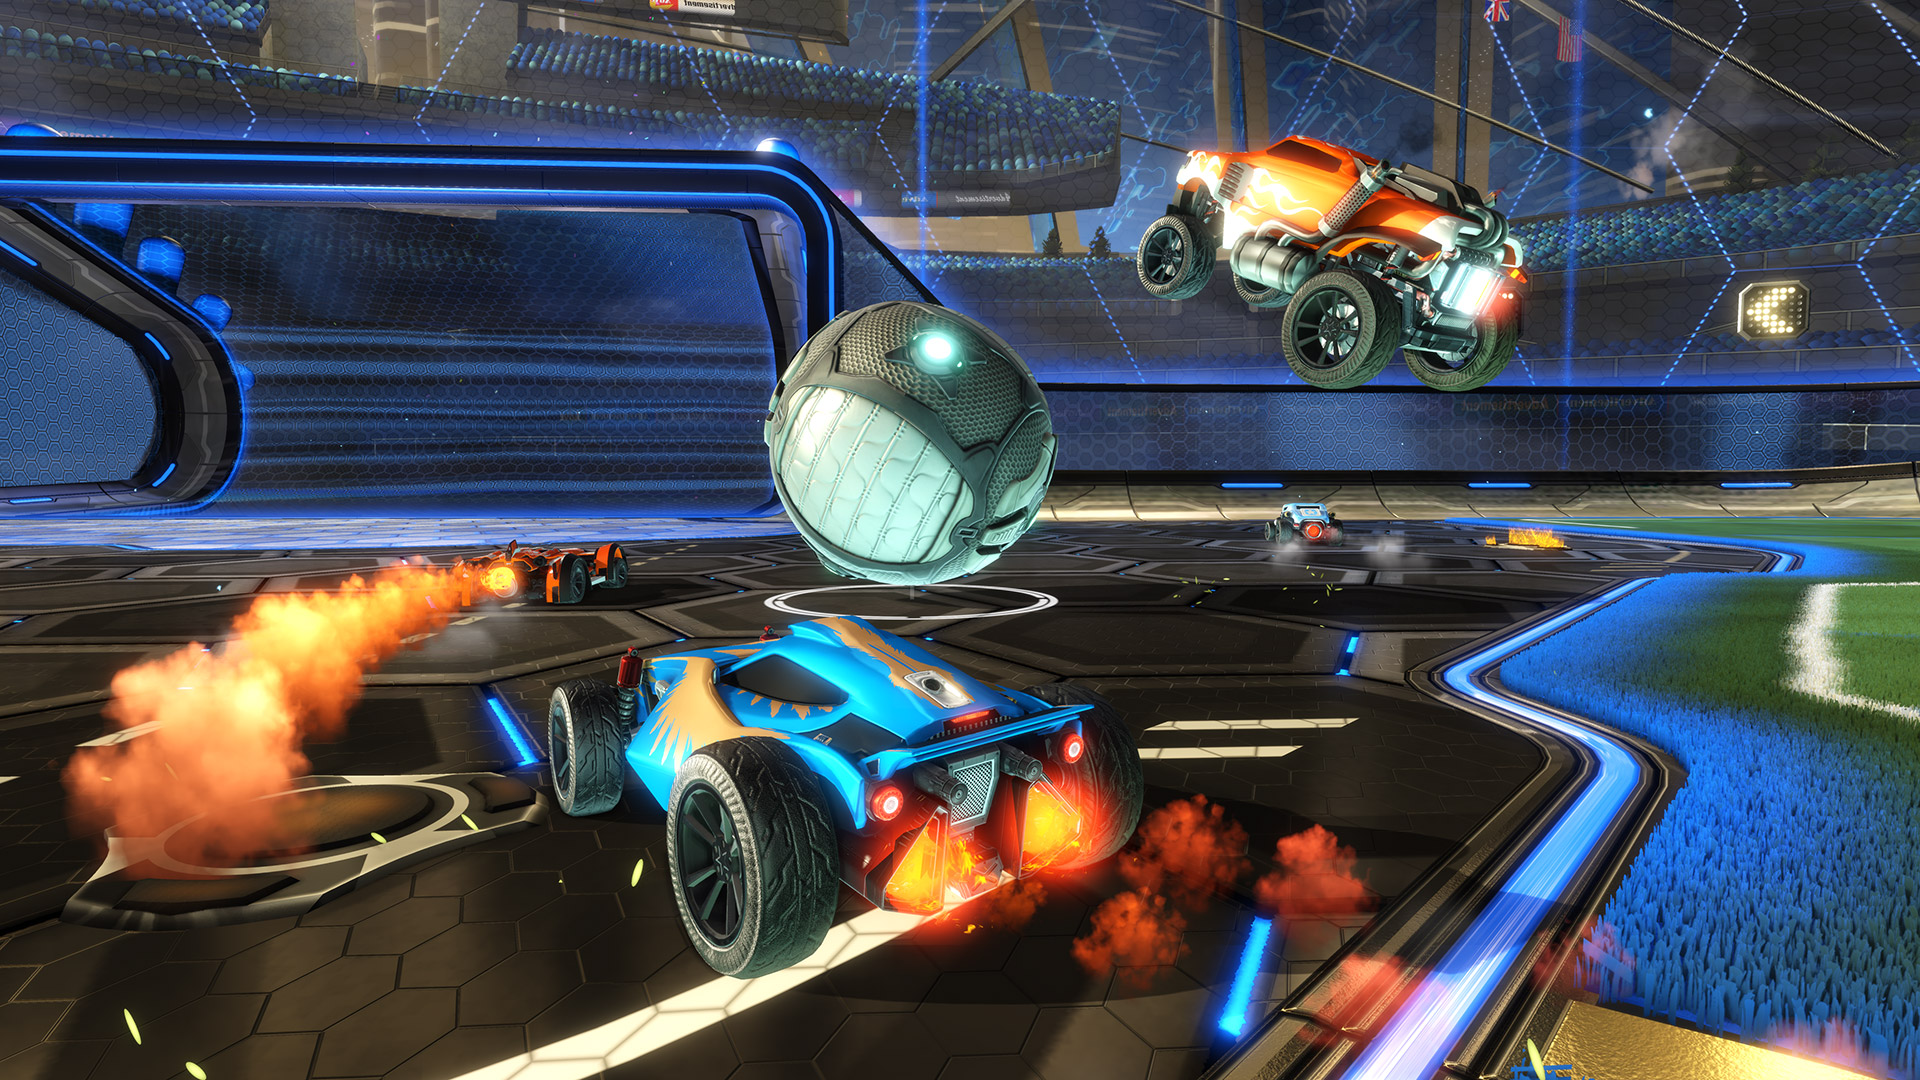 Glacier Gaming Rocket League Review